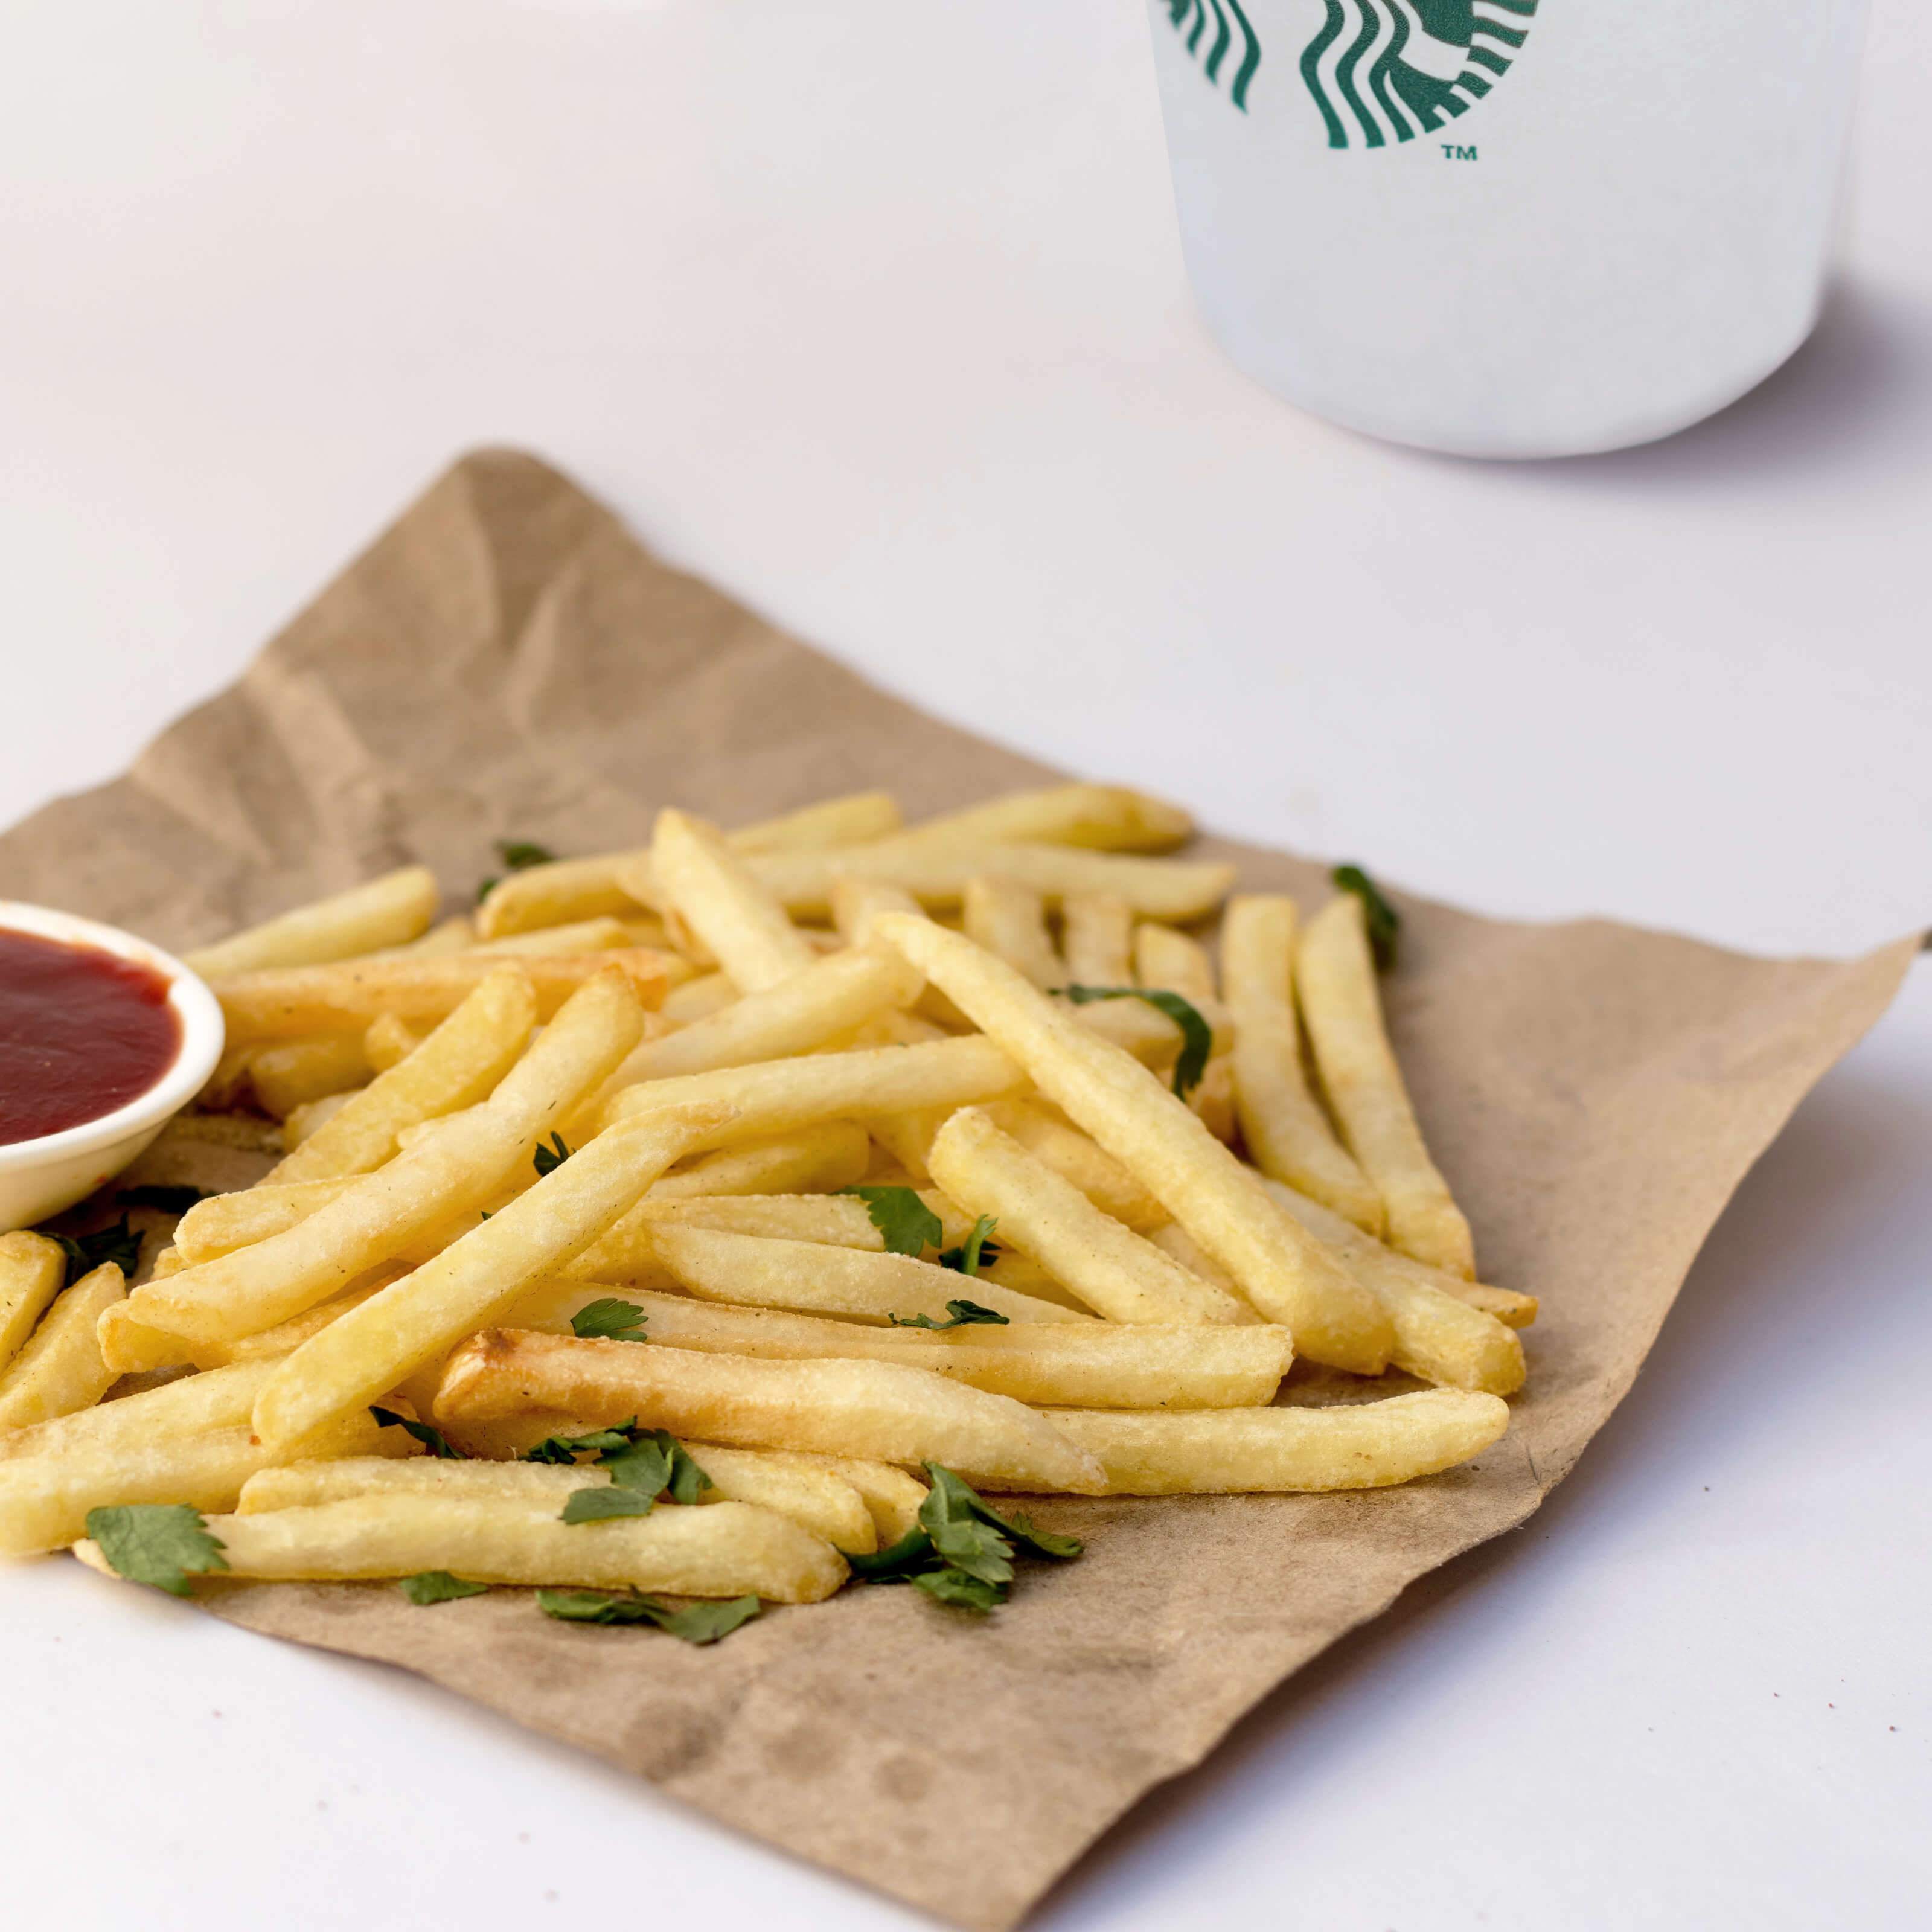 mcdonalds fries, starbucks coffee cup